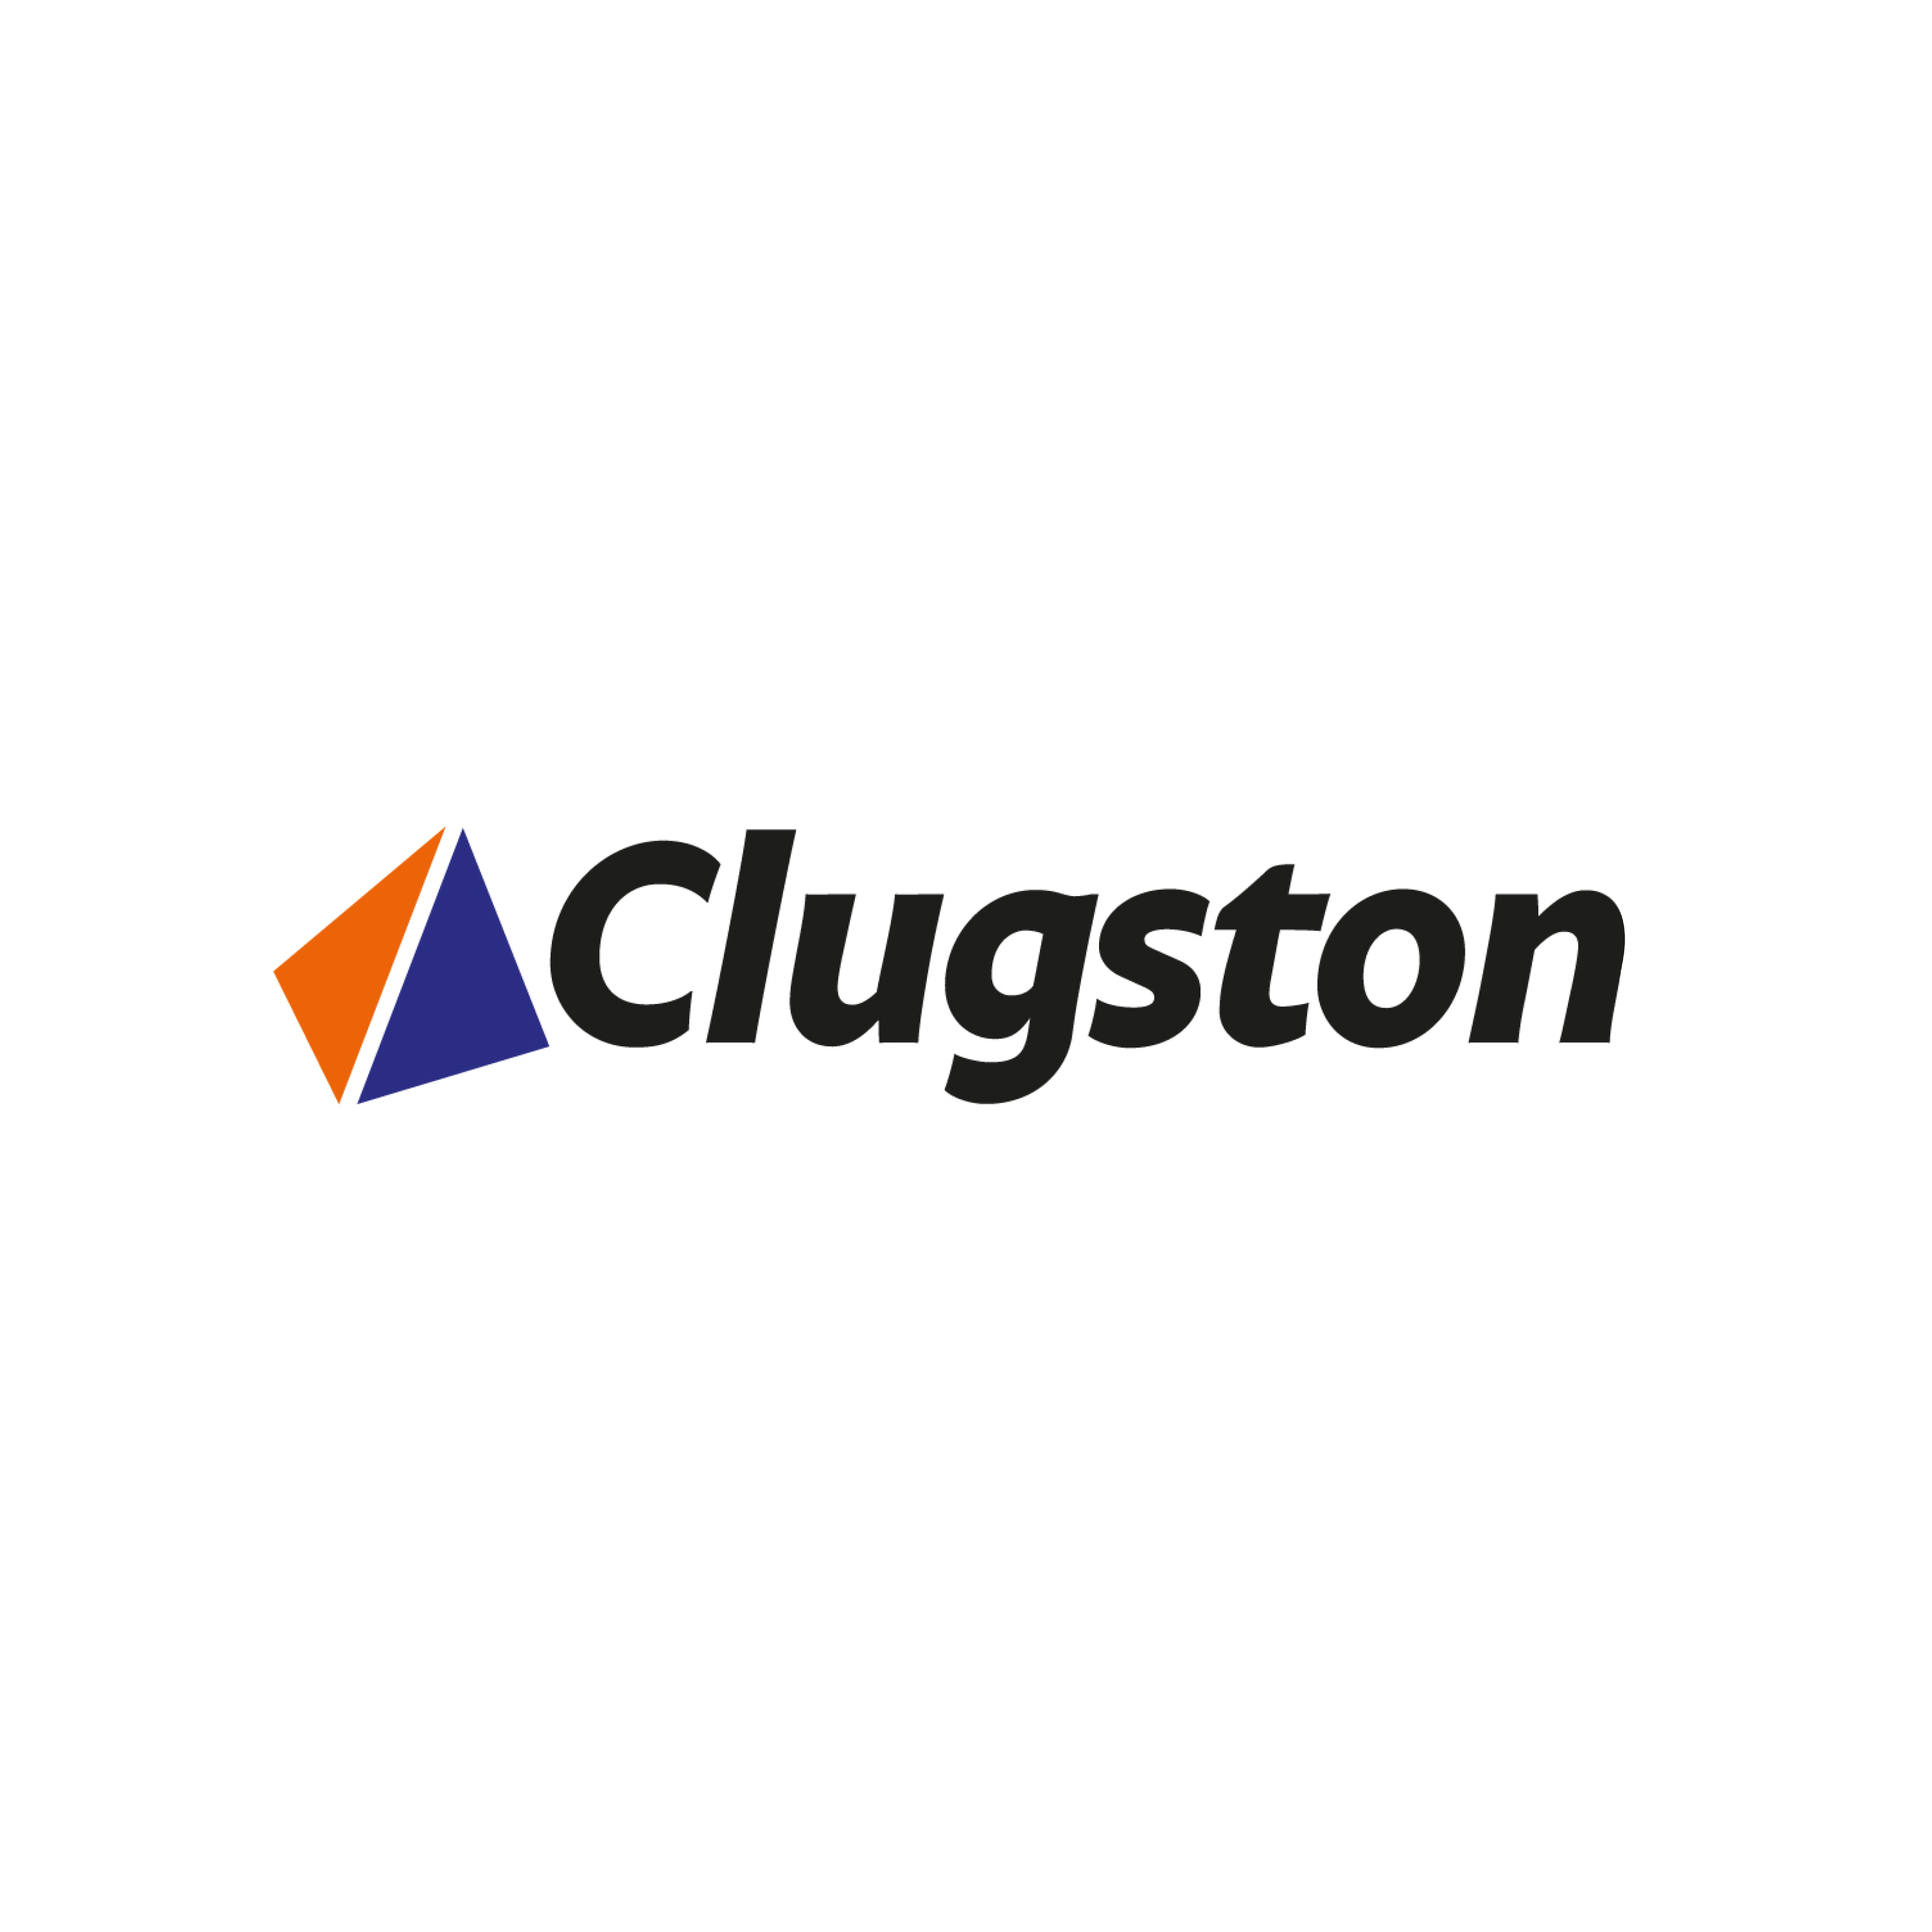 clugston distribution logo